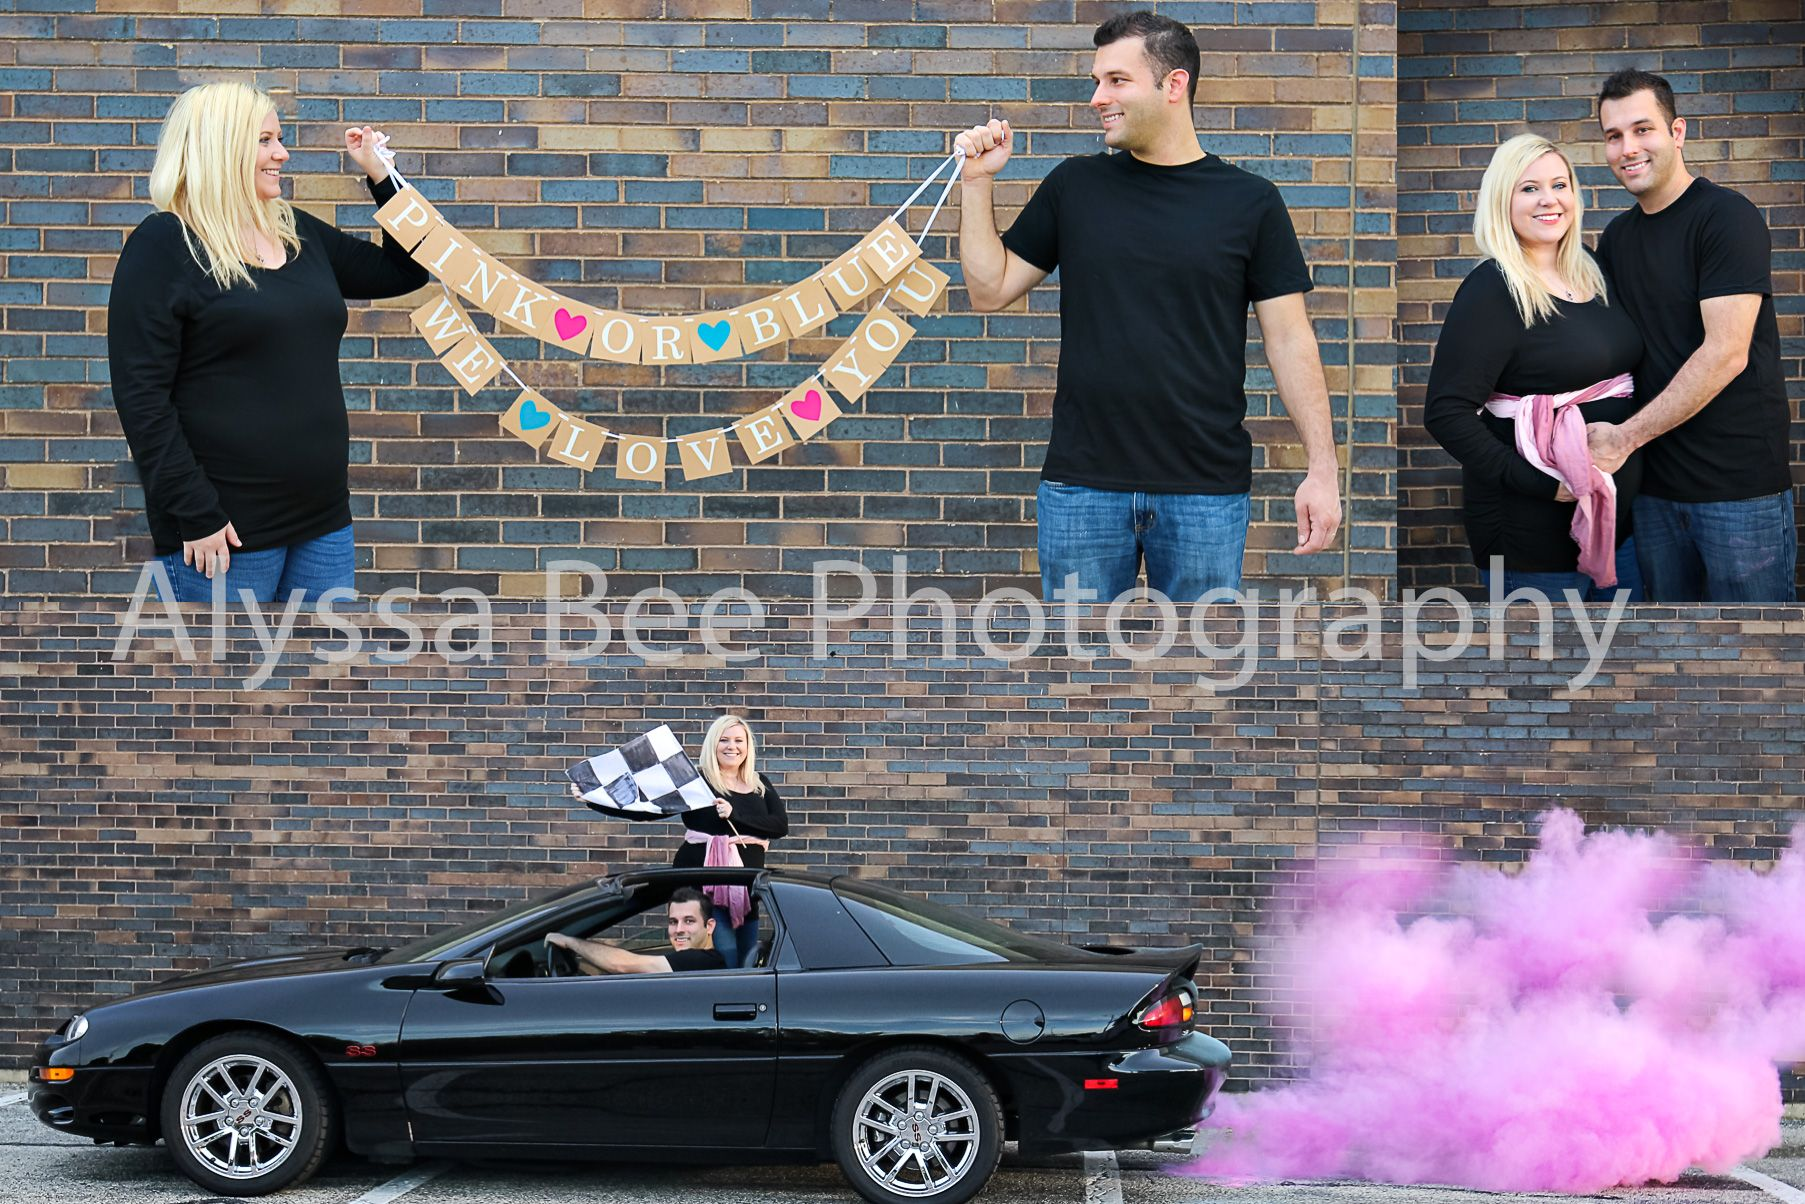 Exhaust Powder Was Ordered On Amazon And The Banner Is From Etsy Pour Powder Into Exhaust And Rev Baby Gender Reveal Baby Shower Gender Reveal Maternity Poses